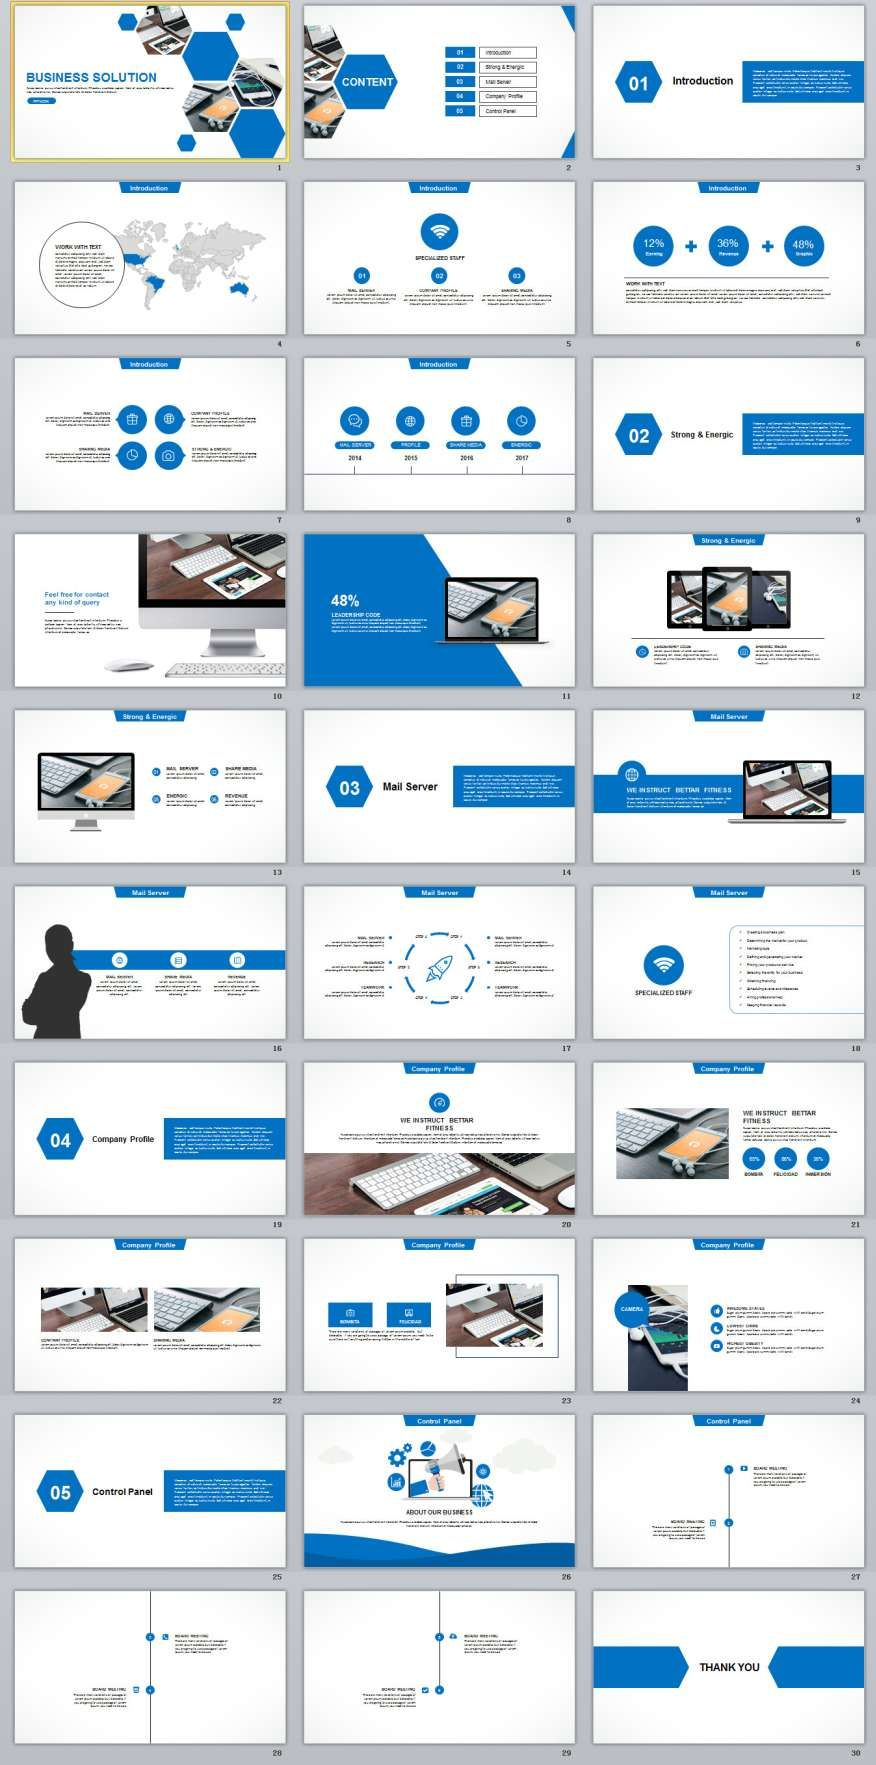 30 Blue Business Solution Powerpoint Templates Best Powerpoint